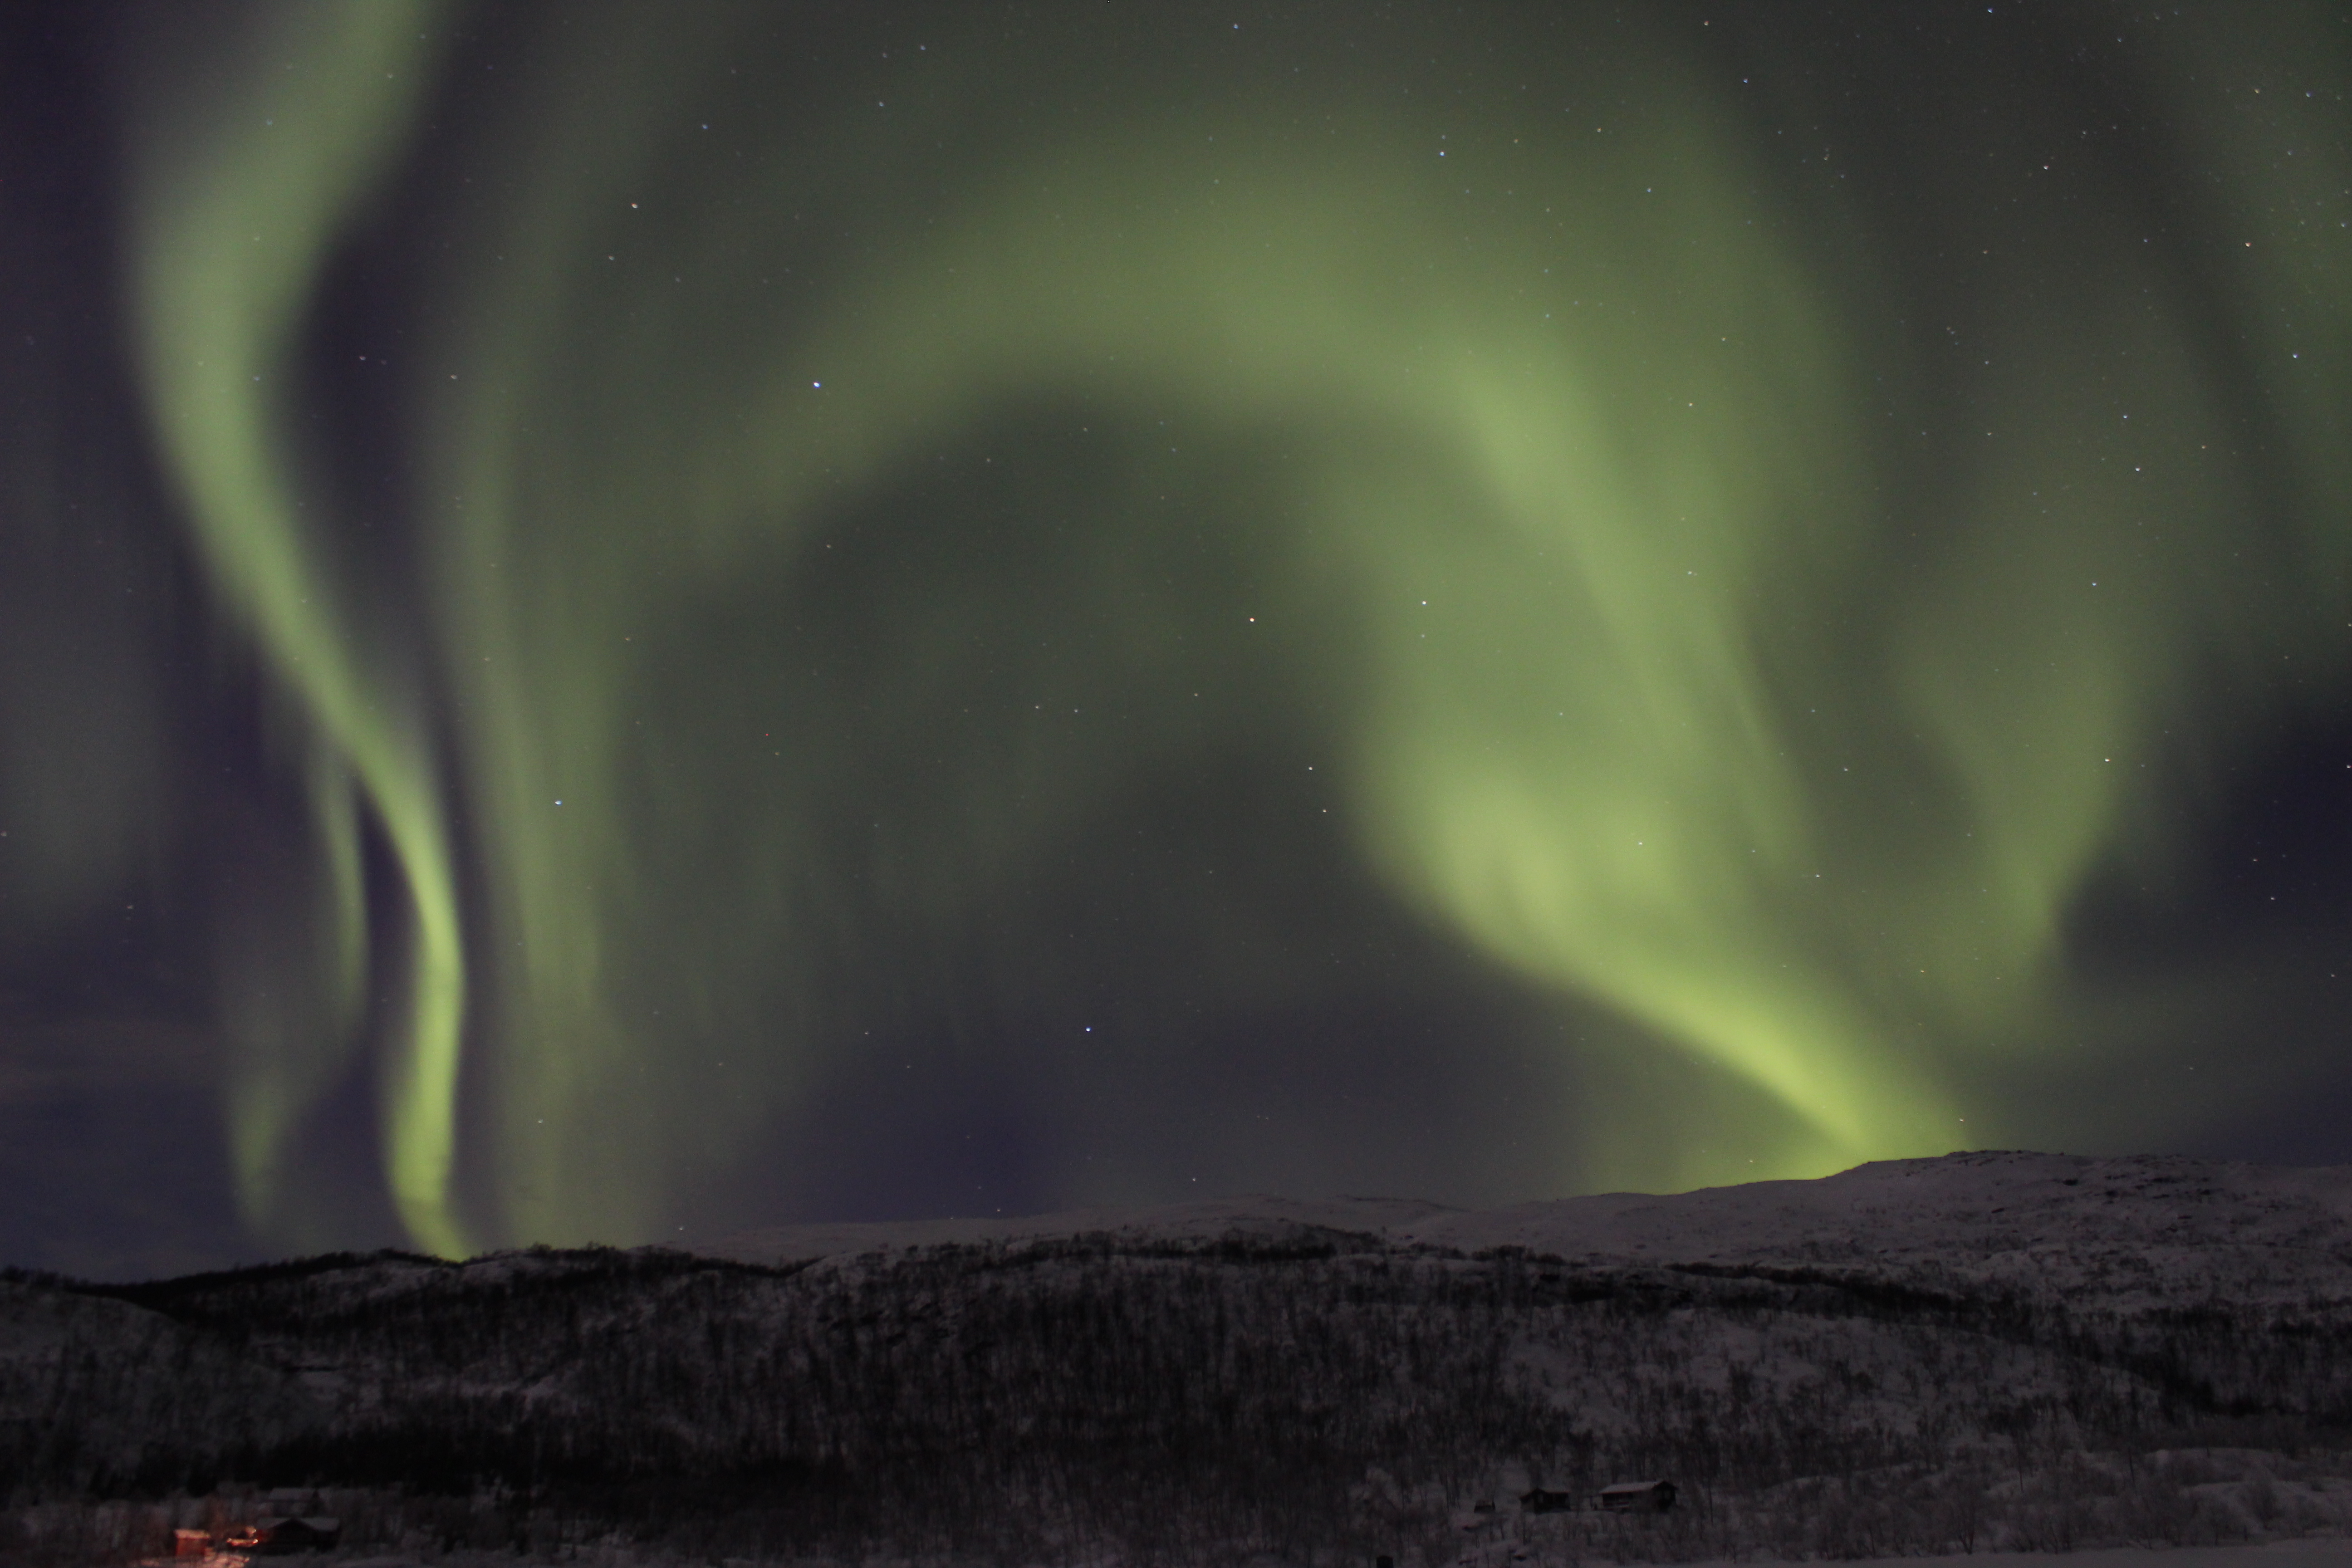 The Northern Lights (also known as the aurora borealis) over Norway. Senior NASA scientists recently forecast that the current phase of solar maximum activity would reach a peak in December 2013 – producing the best conditions for seeing the Northern Lights. This is set to continue into the winters of 2014 and 2015. Image courtesy of the European Space Agency